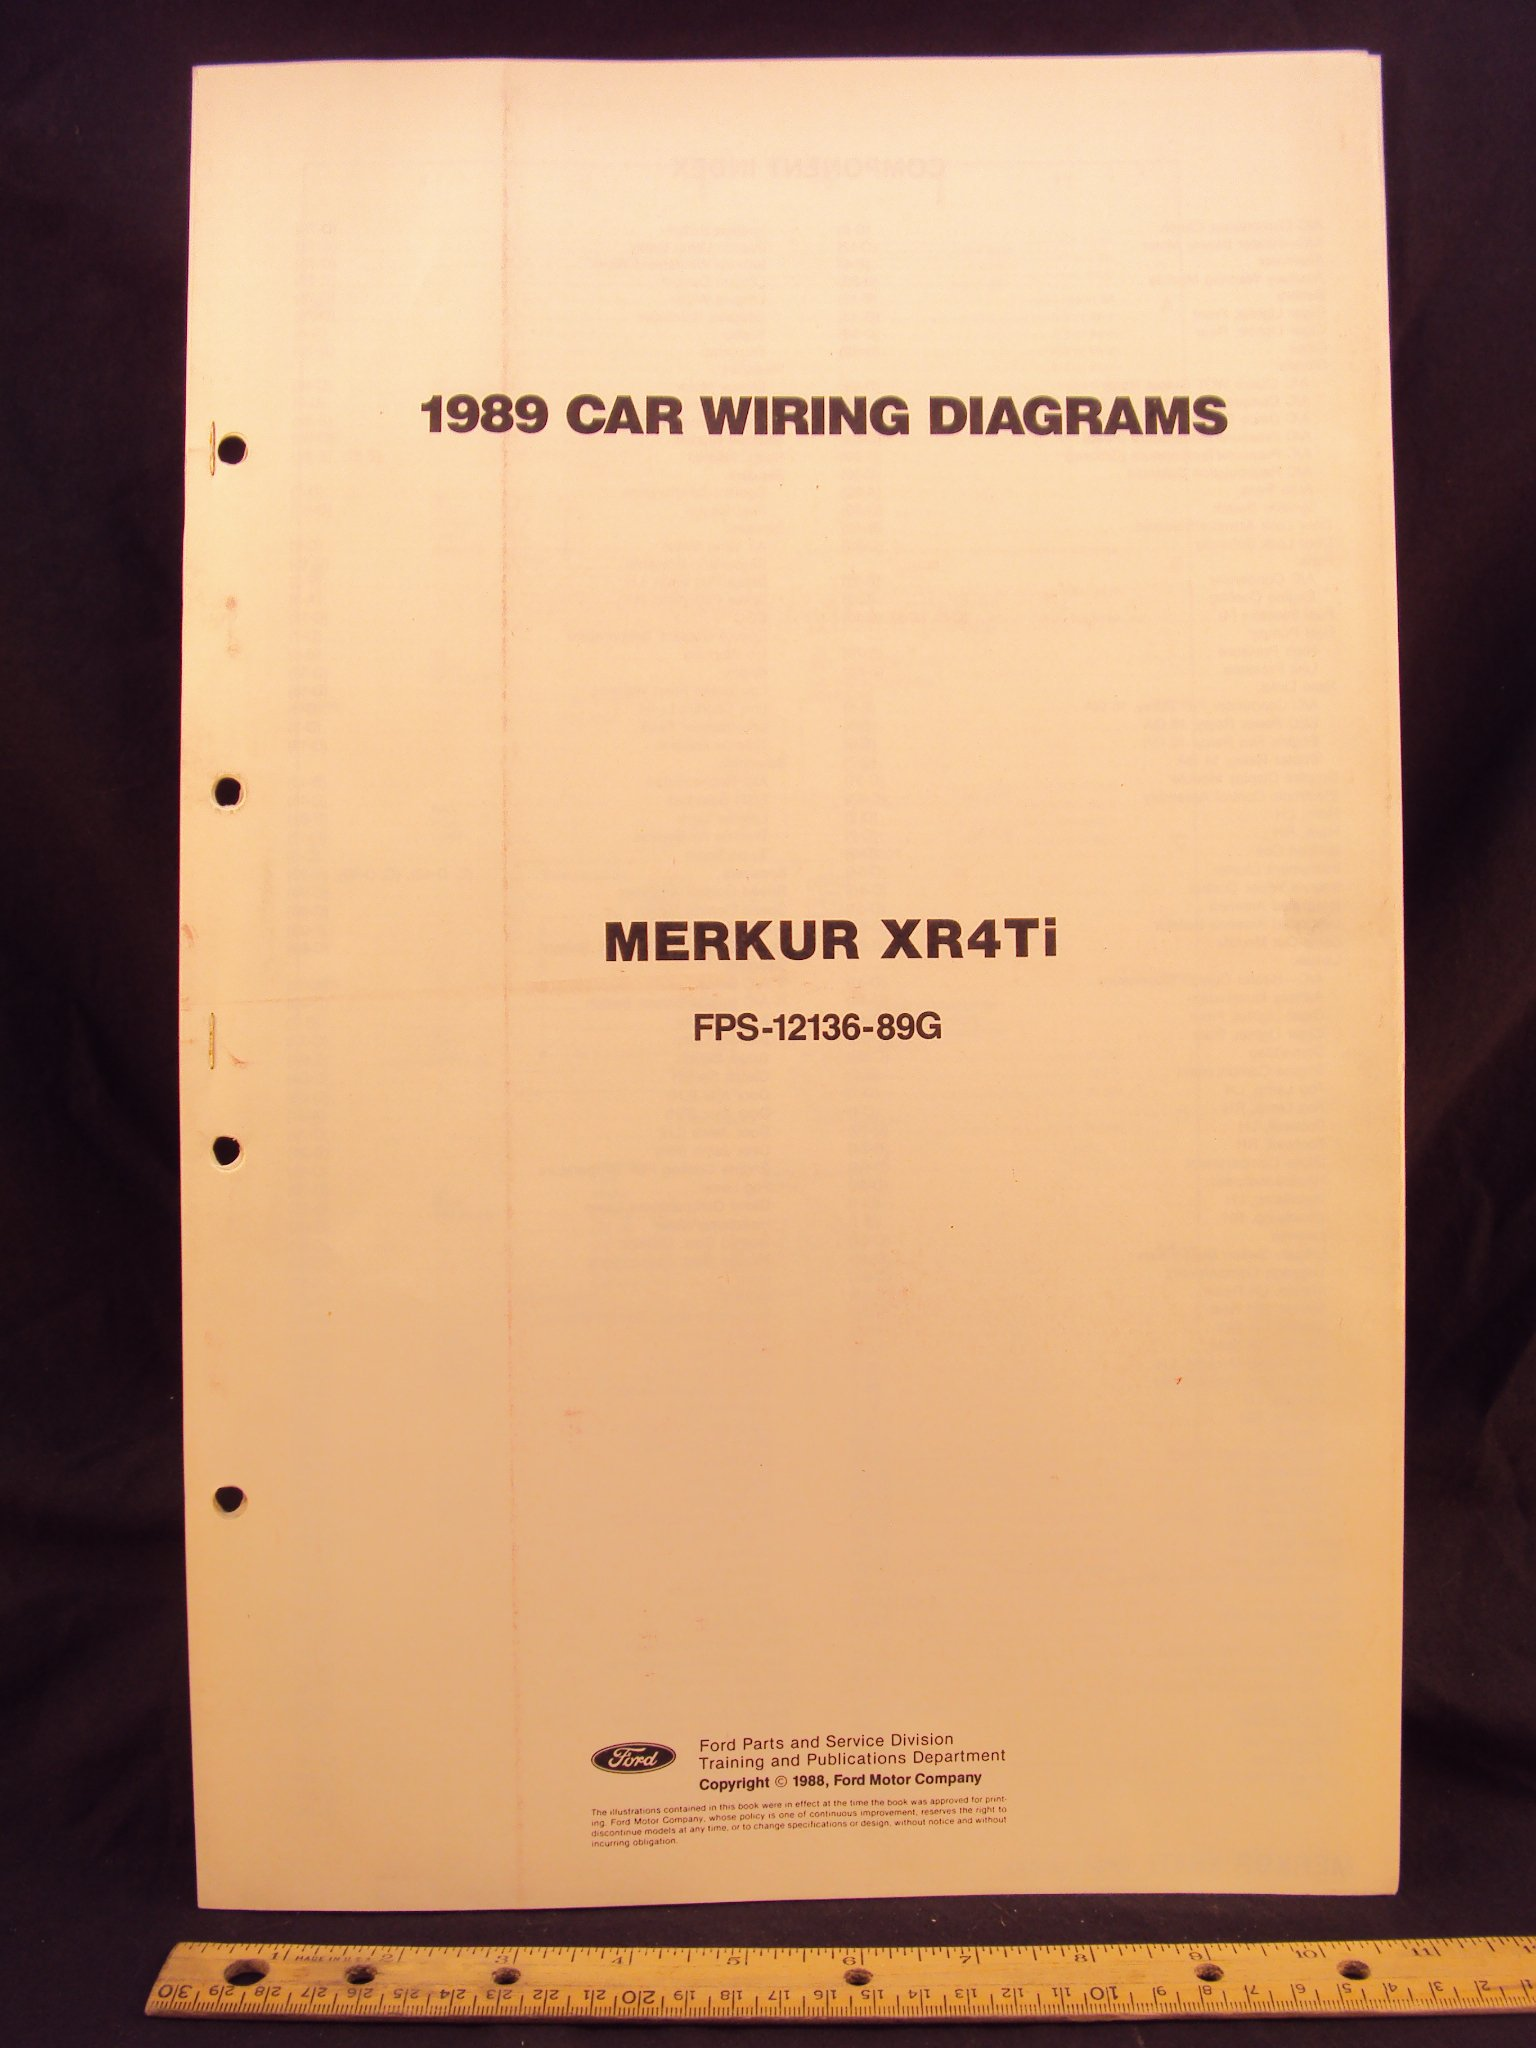 1989 mercury merkur xr4ti electrical wiring diagrams schematics rh amazon com 2012 Dodge Avenger Wiring-Diagram 2012 Dodge Avenger Wiring-Diagram